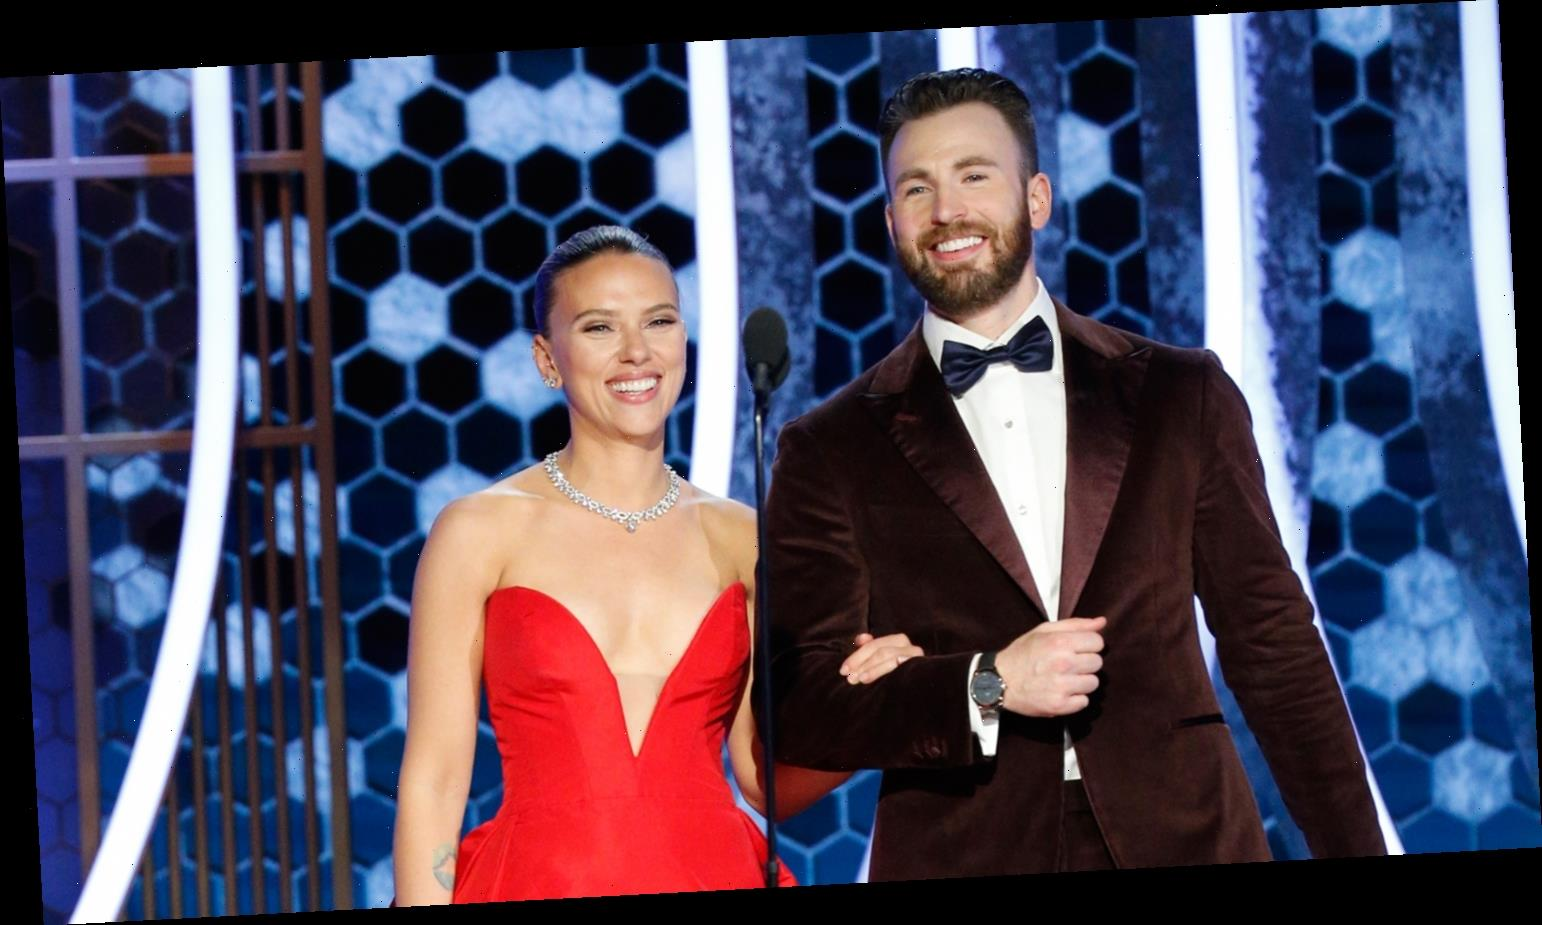 Chris Evans Helps Scarlett Johansson With Her Dress During Off Camera Golden Globes 2020 Moment Top News Wood